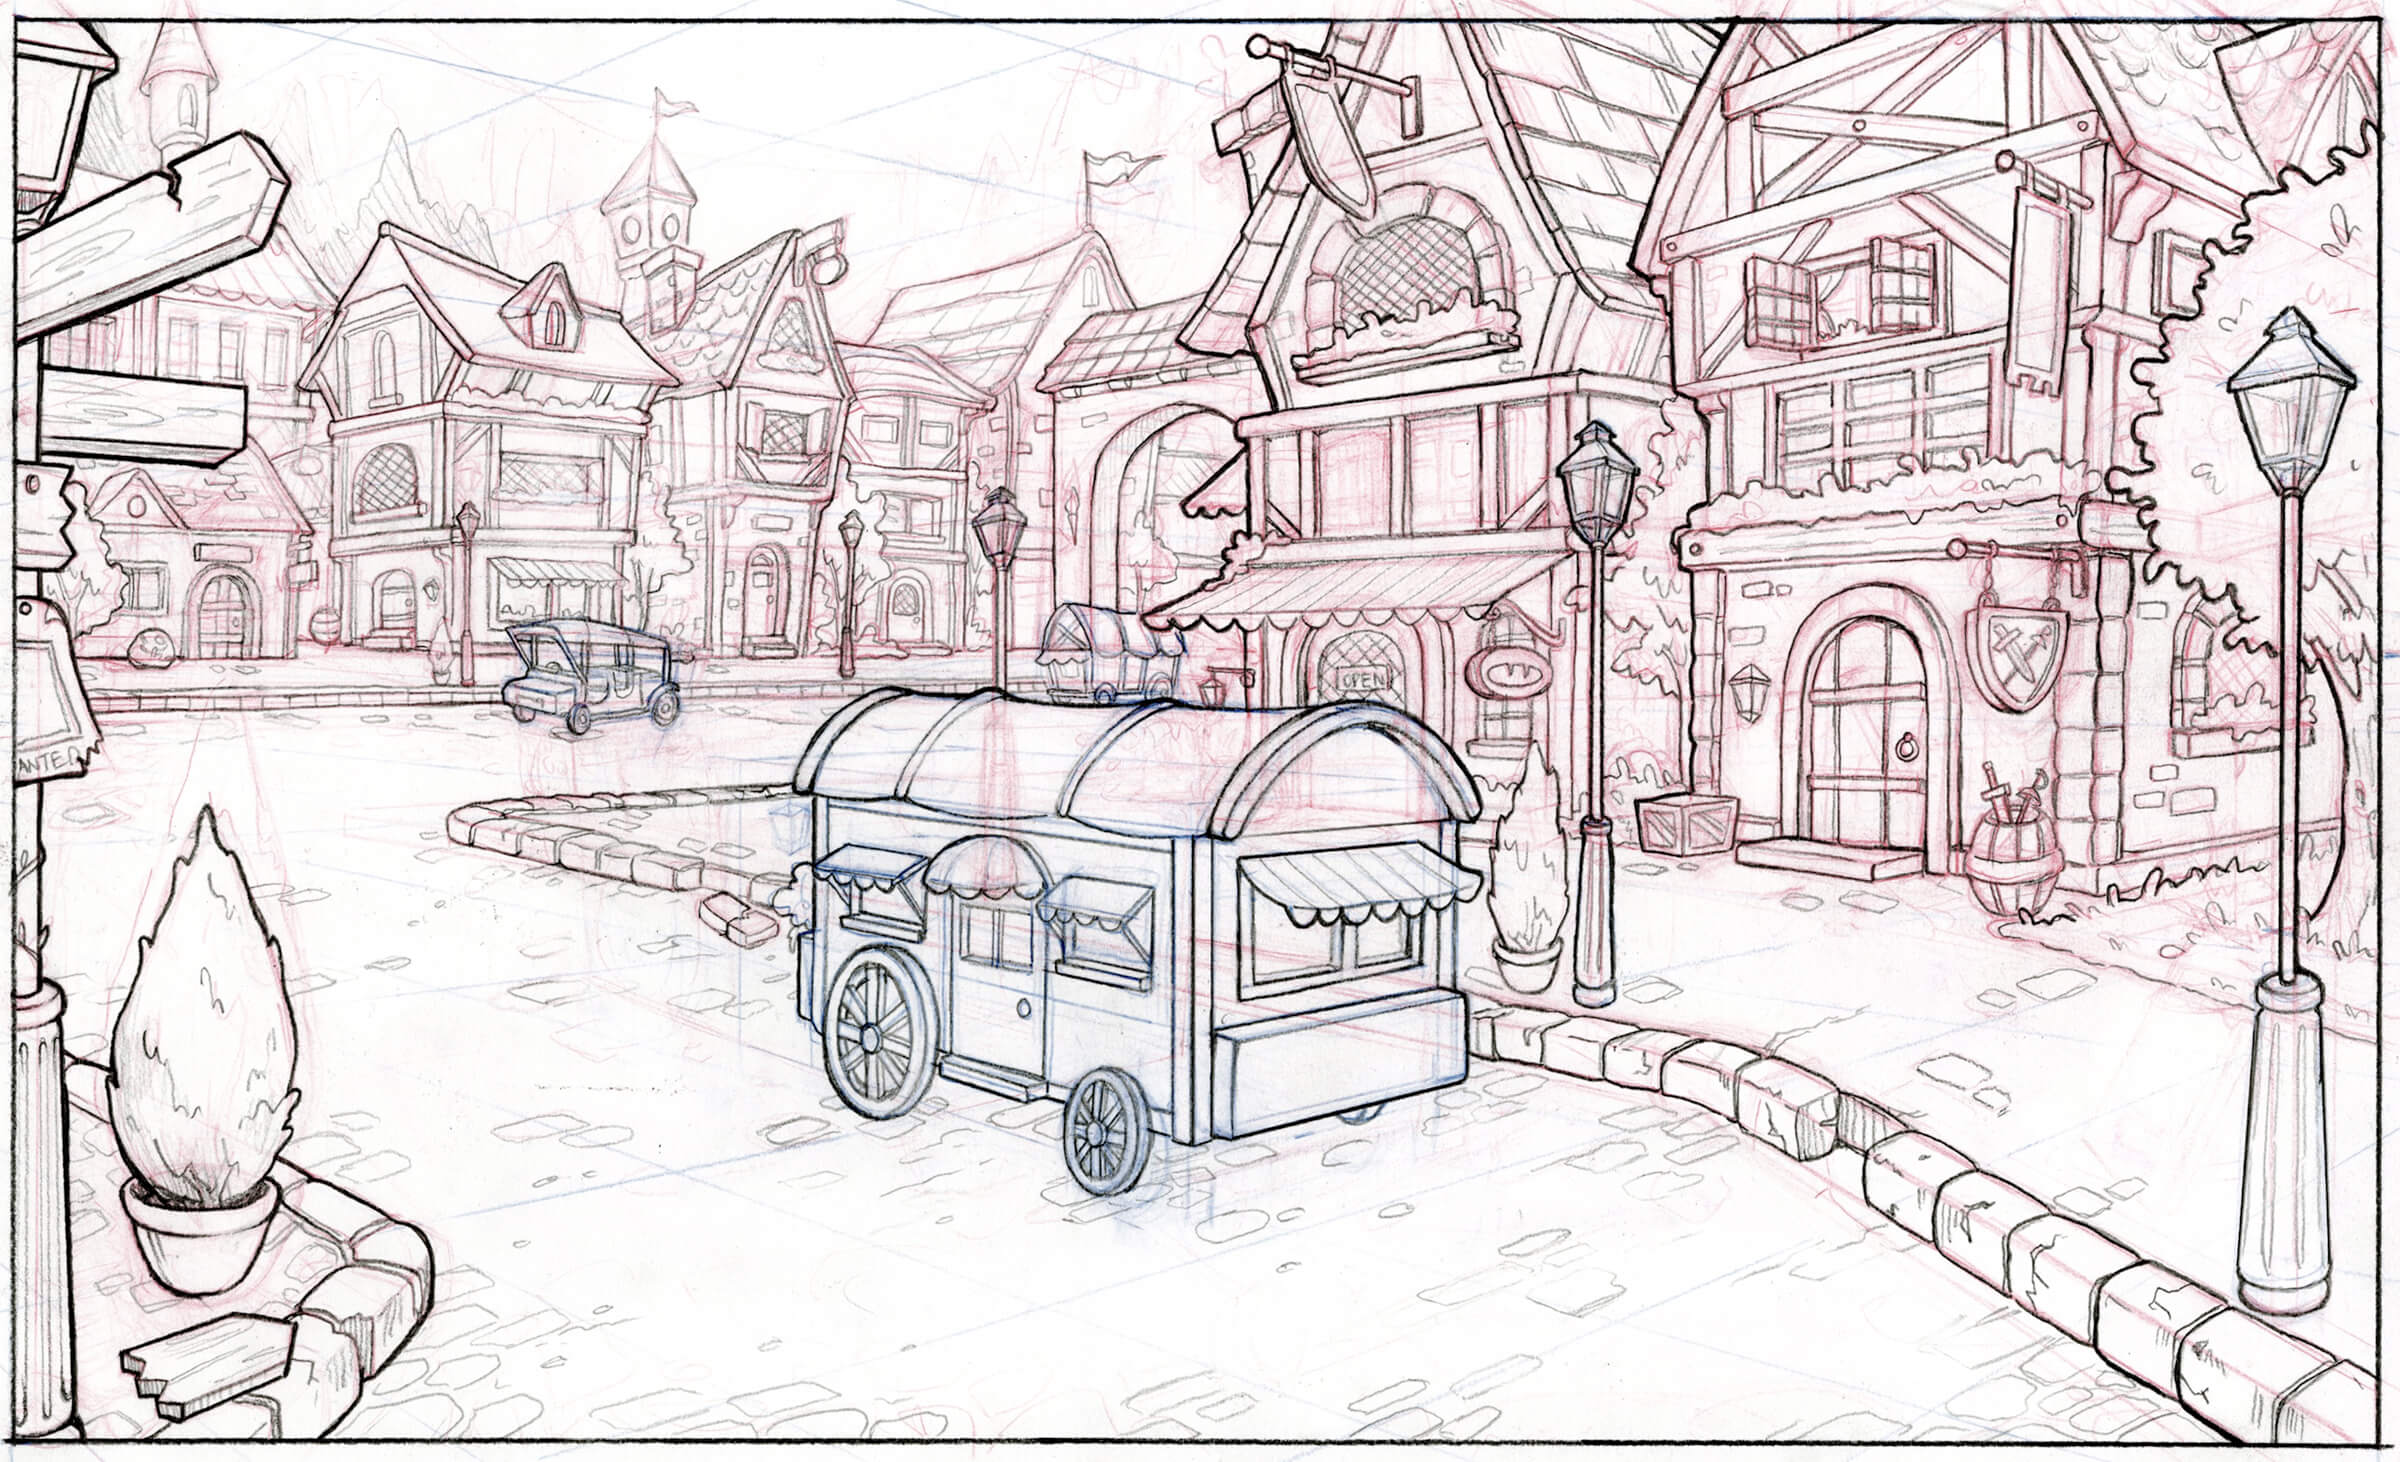 perspective drawing of a European-inspired village street